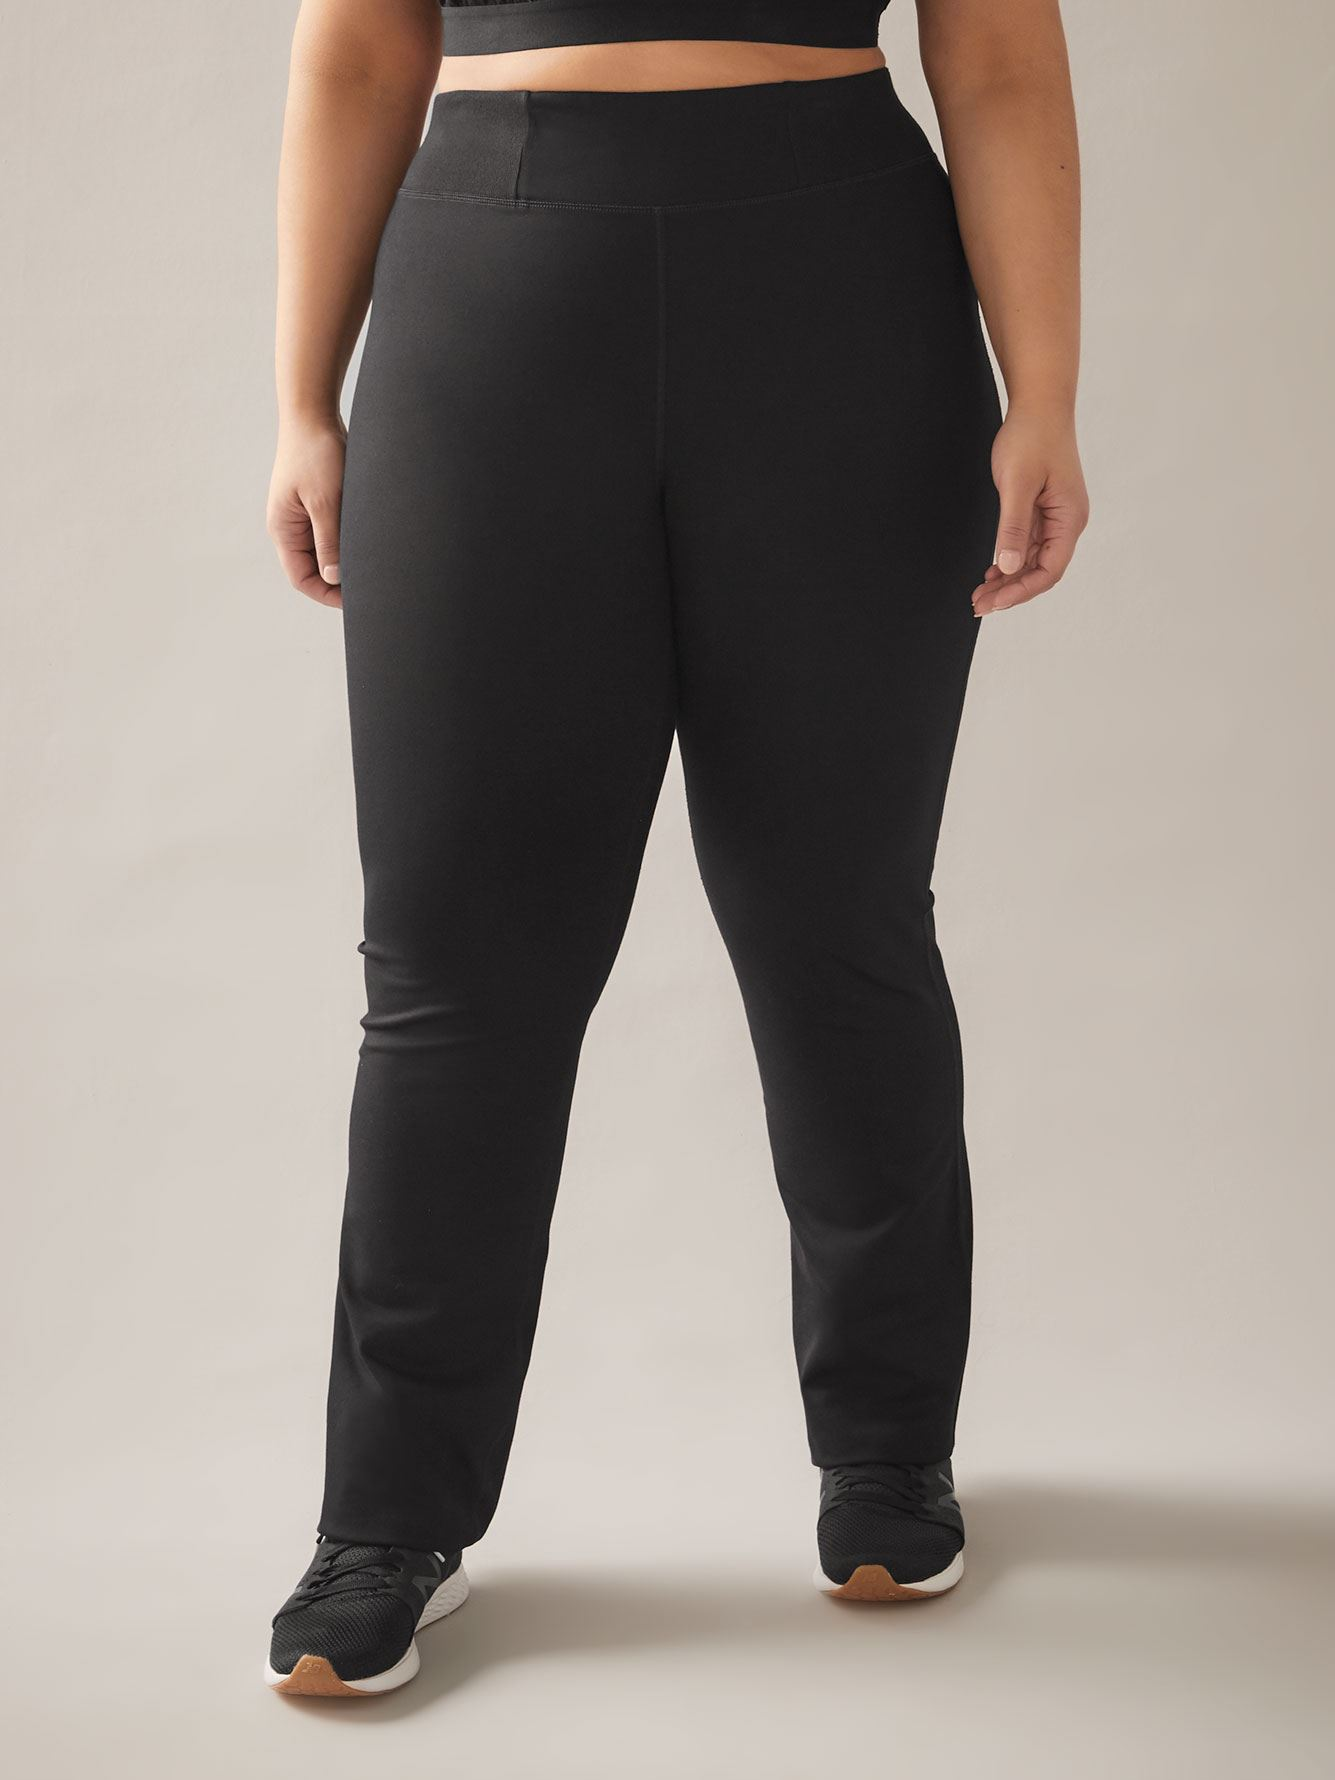 Petite, Solid Basic Yoga Ankle Pant - ActiveZone